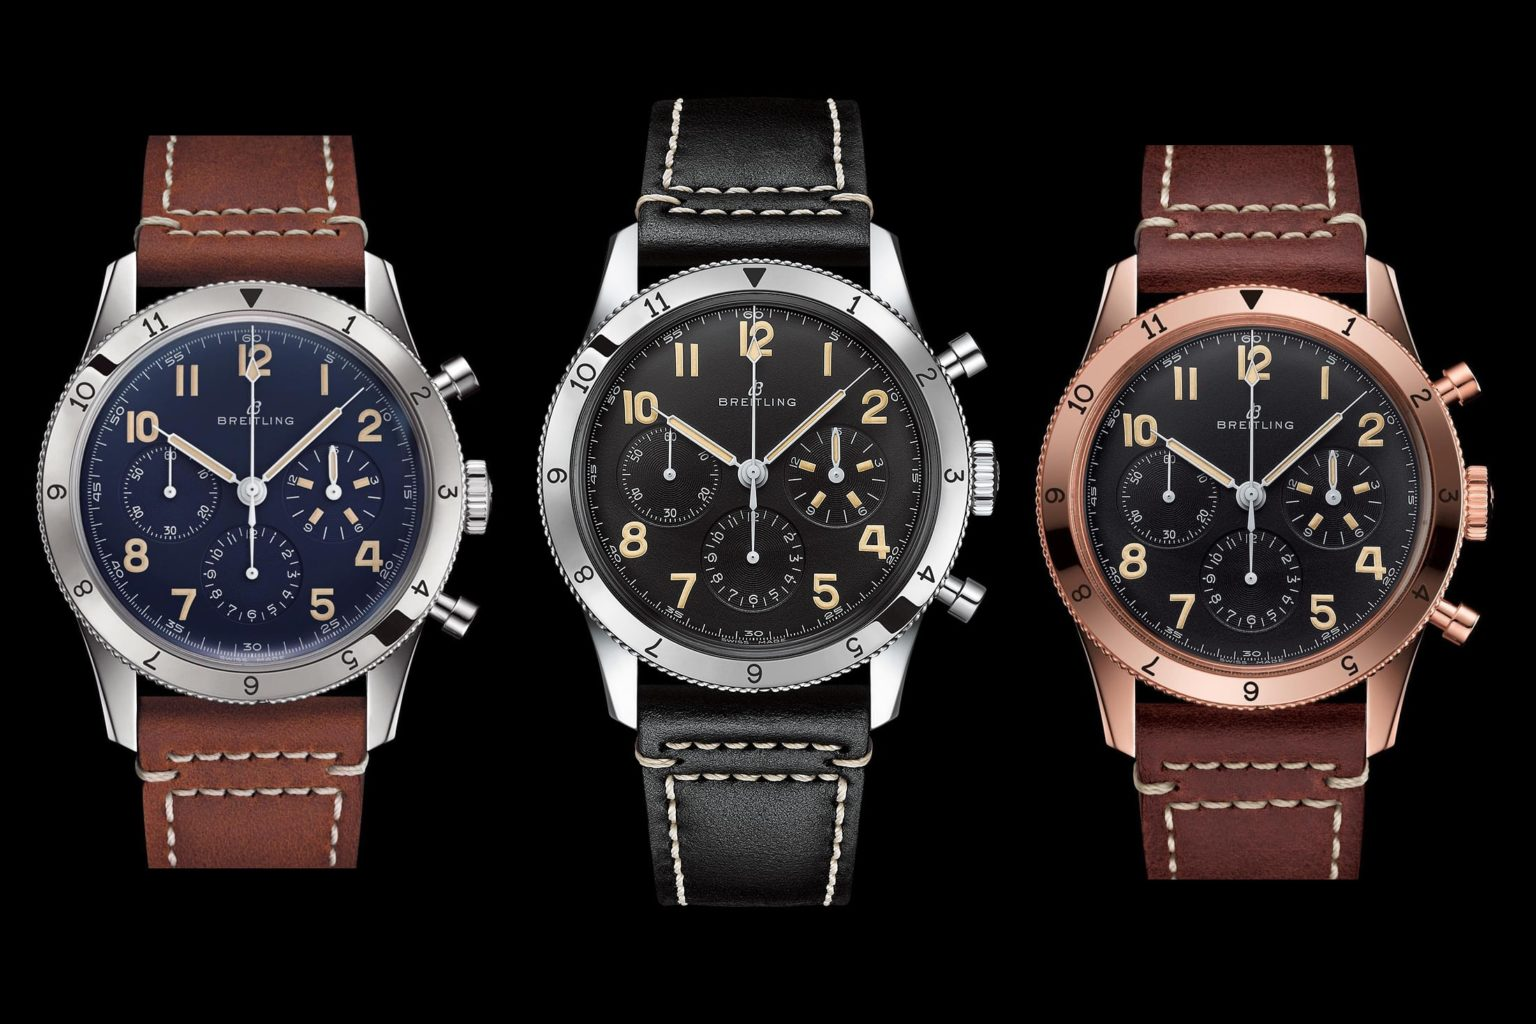 Breitling Replica Watches Are The Best In The World - Here's Why